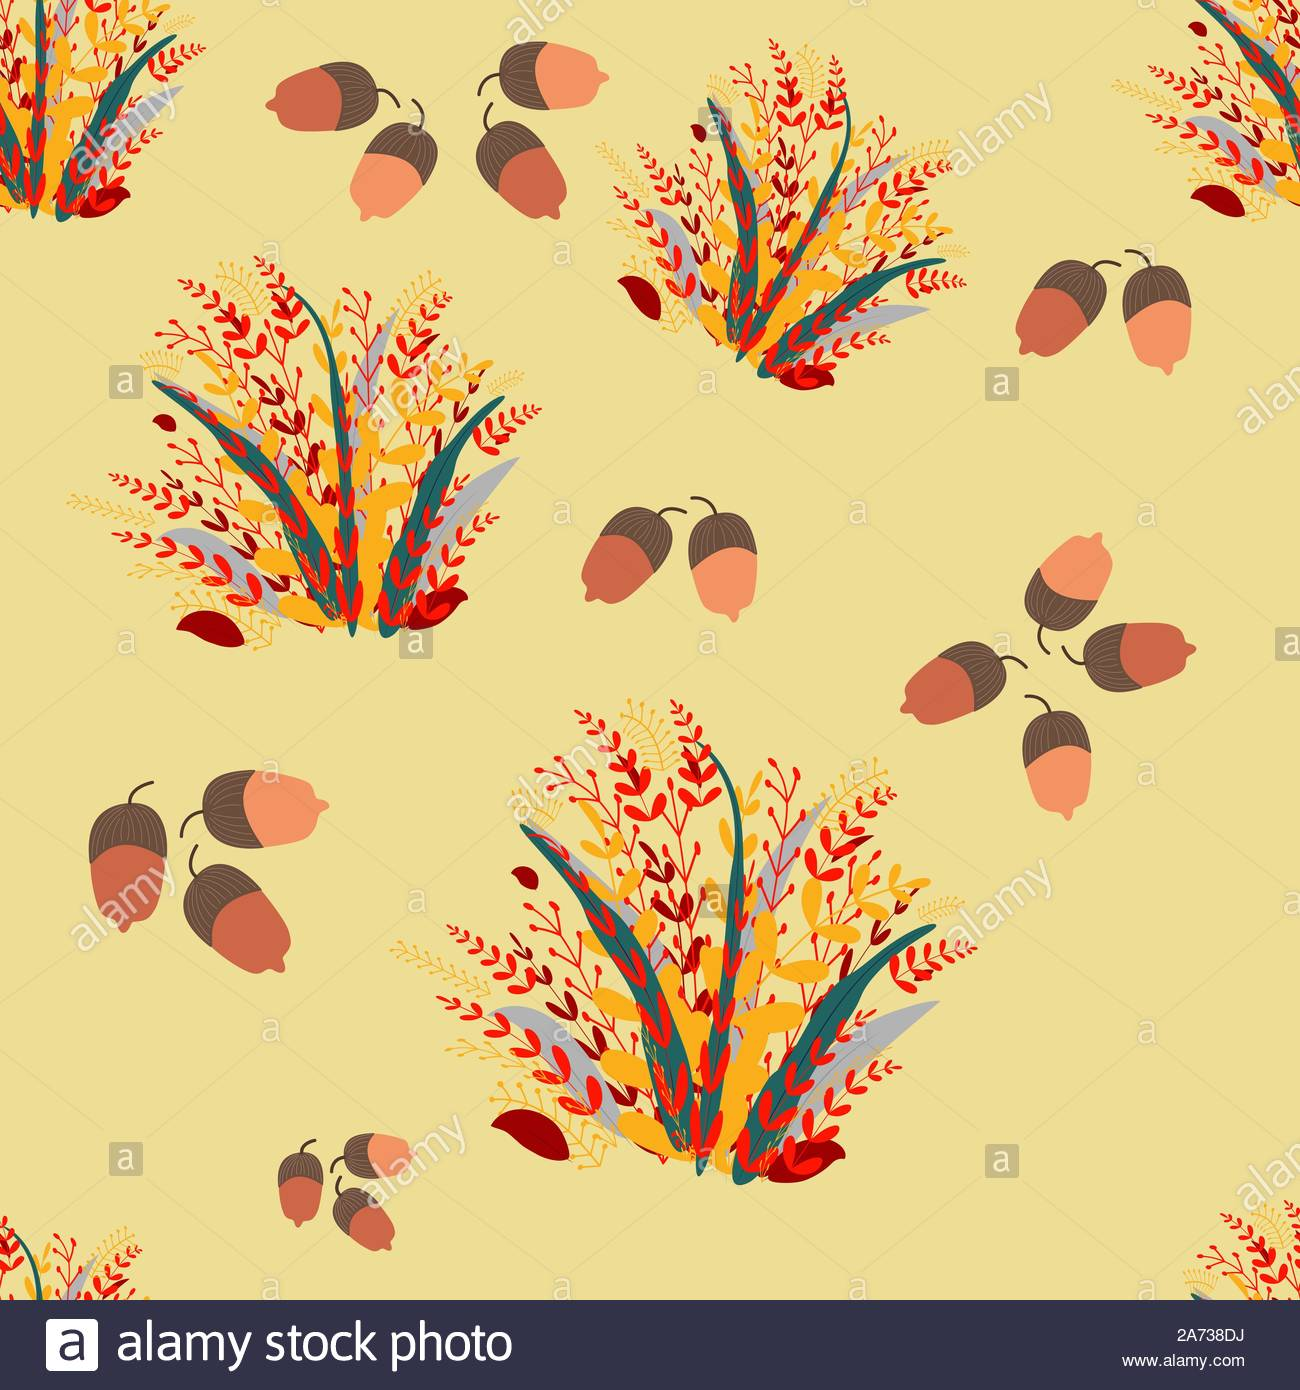 - Seamless Fall Leaves And Acorns Pattern. Autumn Endless Design